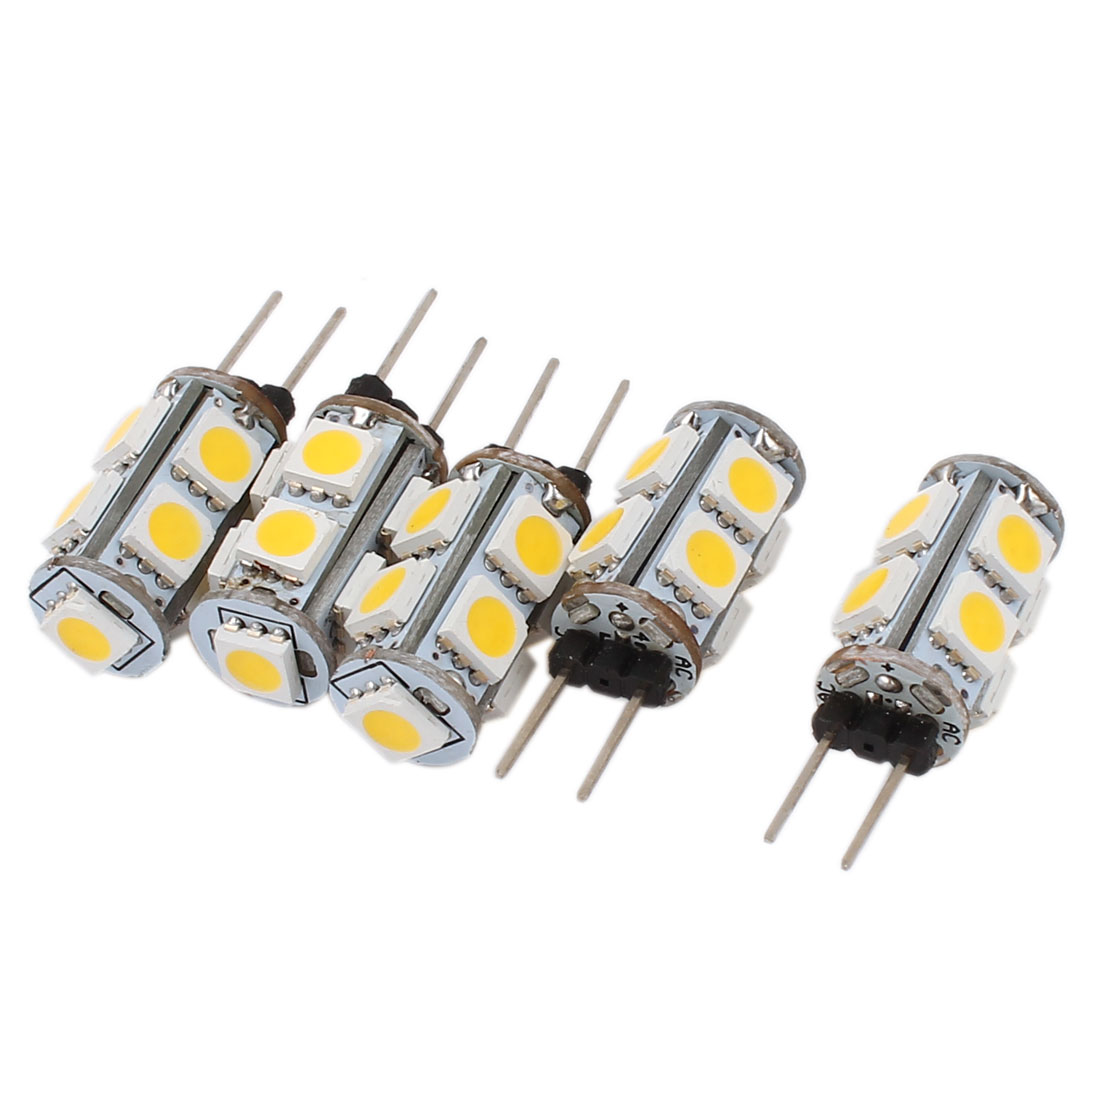 5pcs 55-60LM Energy Saving G4 5050 SMD 9 LED Light Bulb Lamp Warm White